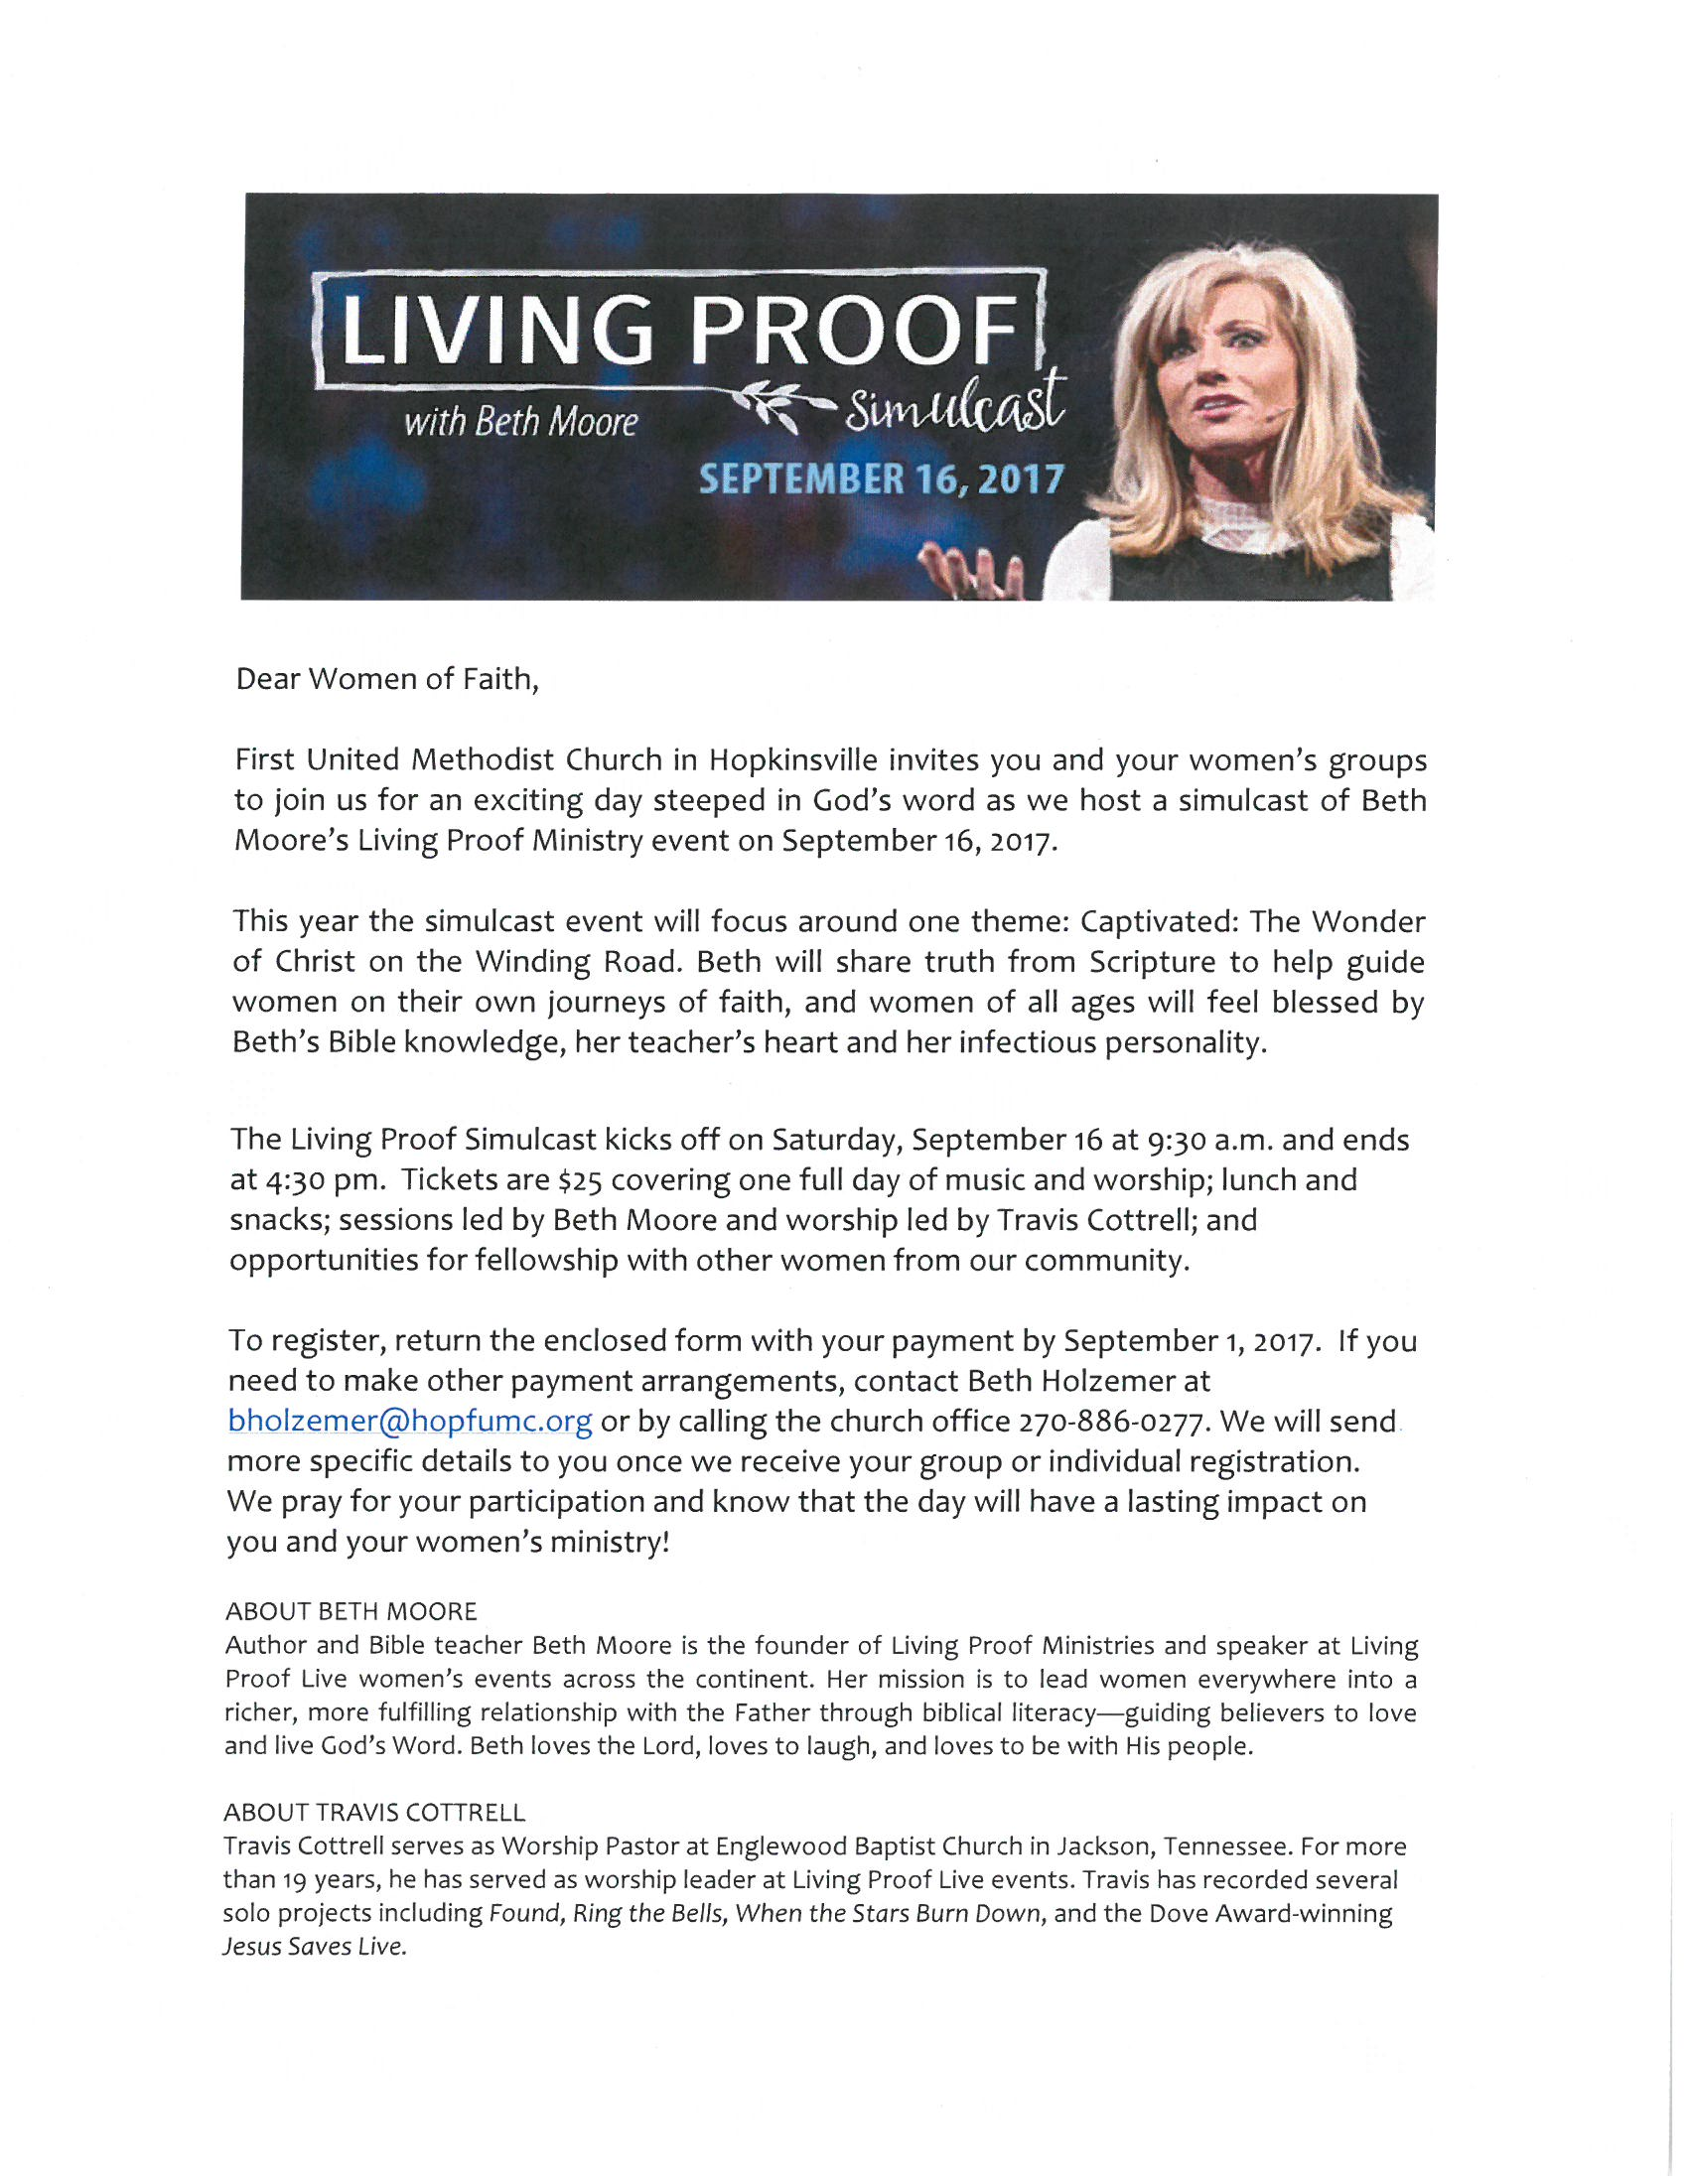 ... join them for an exciting day steeped in God's word as they host a simulcast of Beth Moore's Living Proof Ministry event on September 16th.